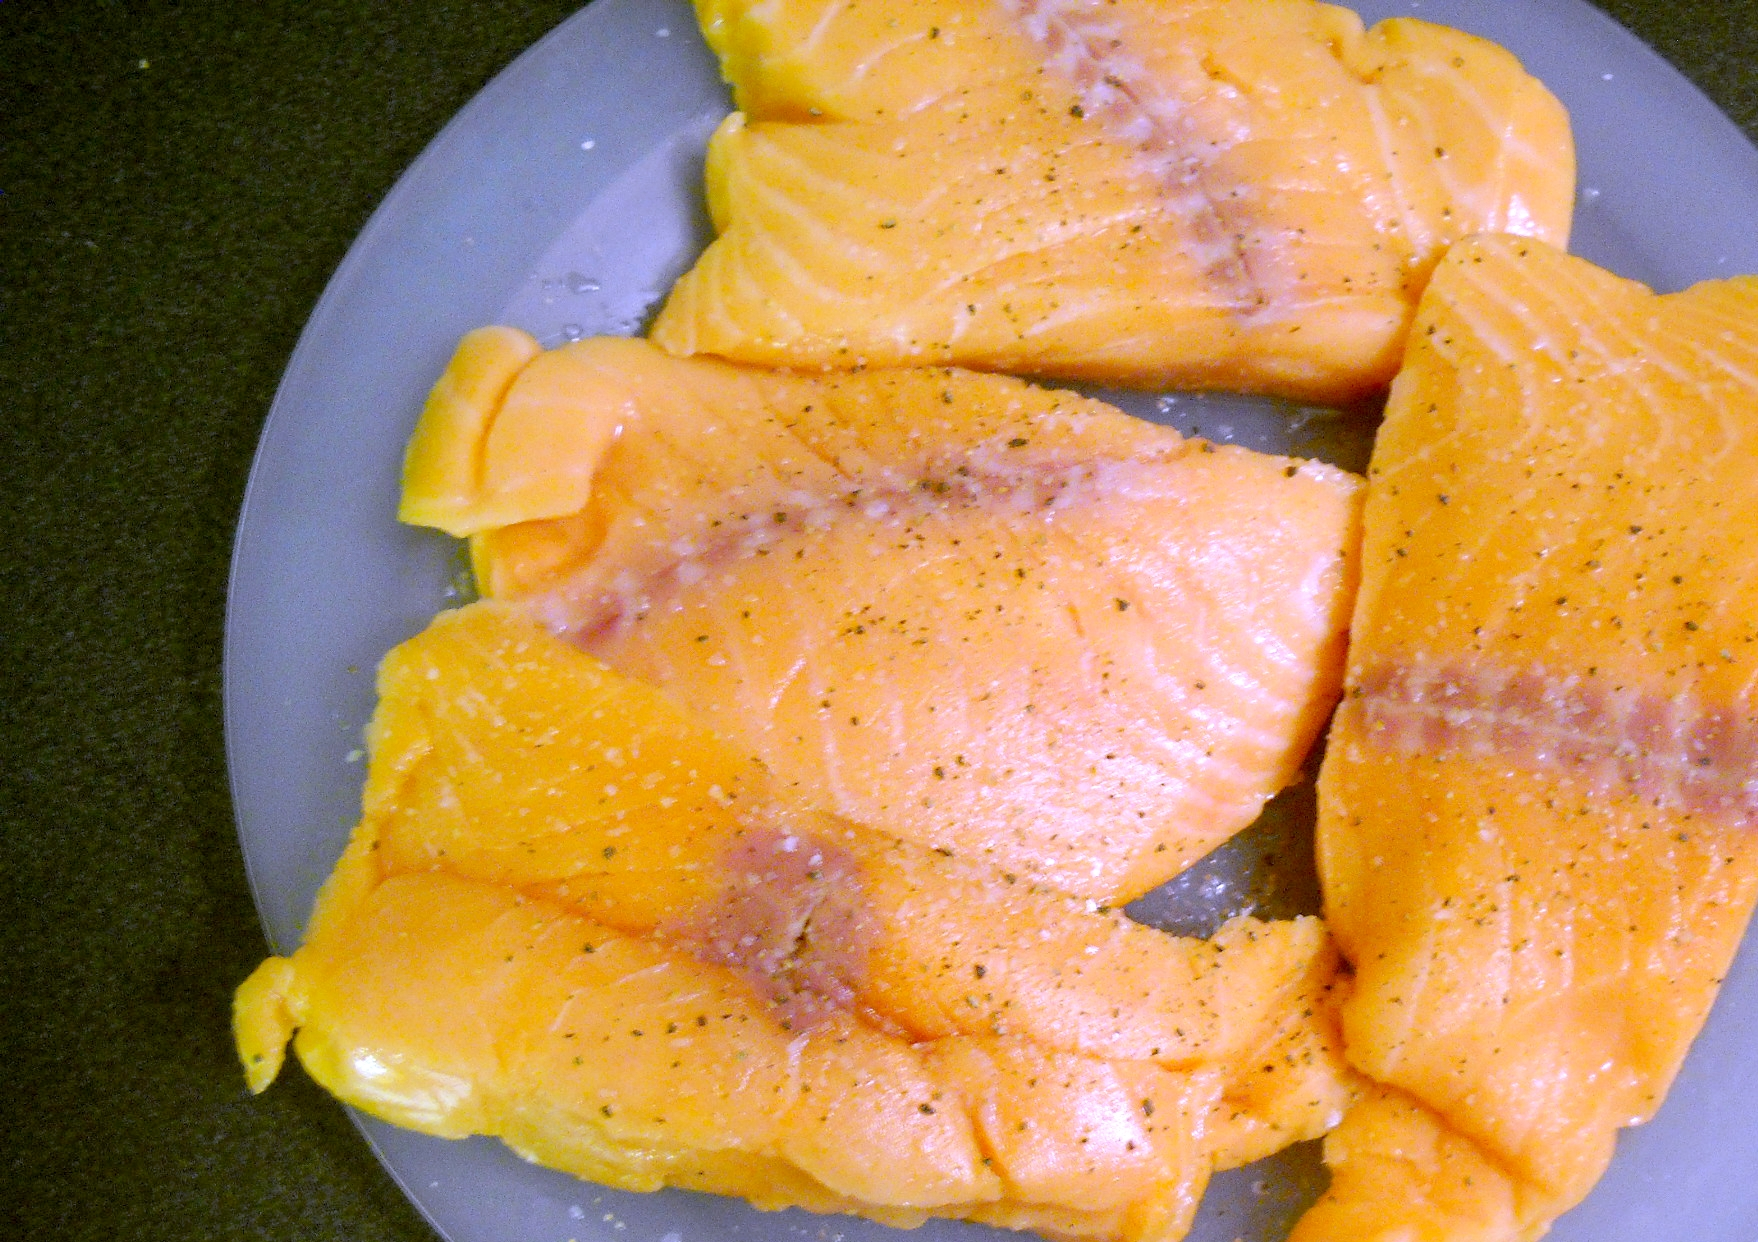 Flavorful easy salmon baked in foil